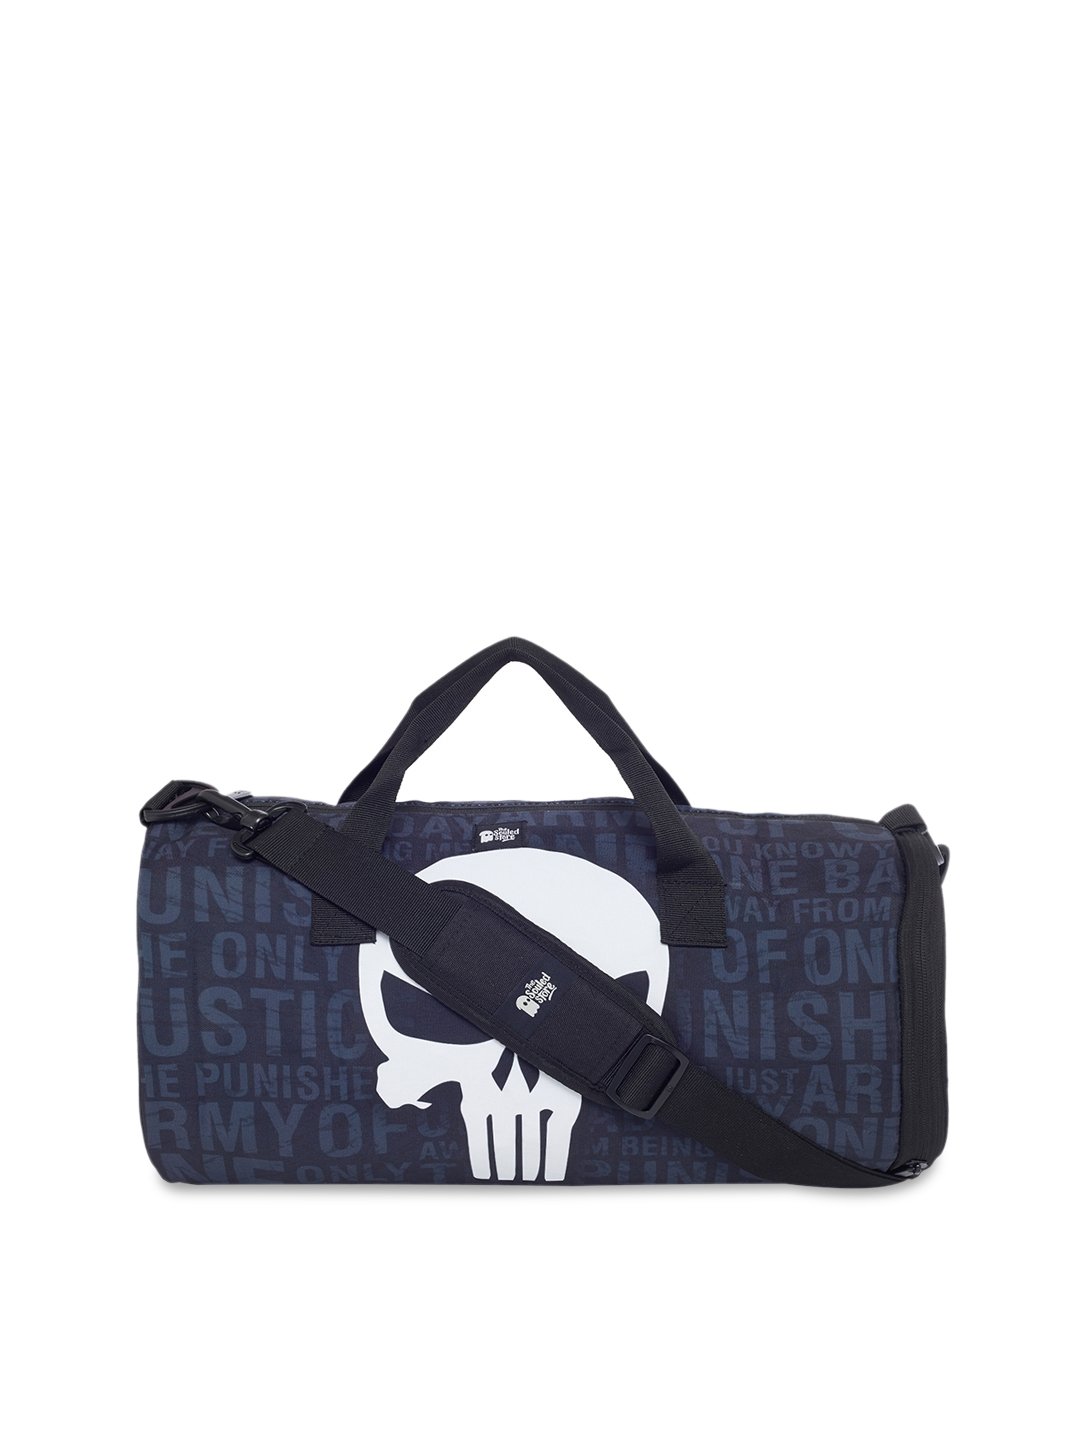 0a87499365e8 Buy The Souled Store Unisex Blue   White Punisher Skull Duffel Bag ...